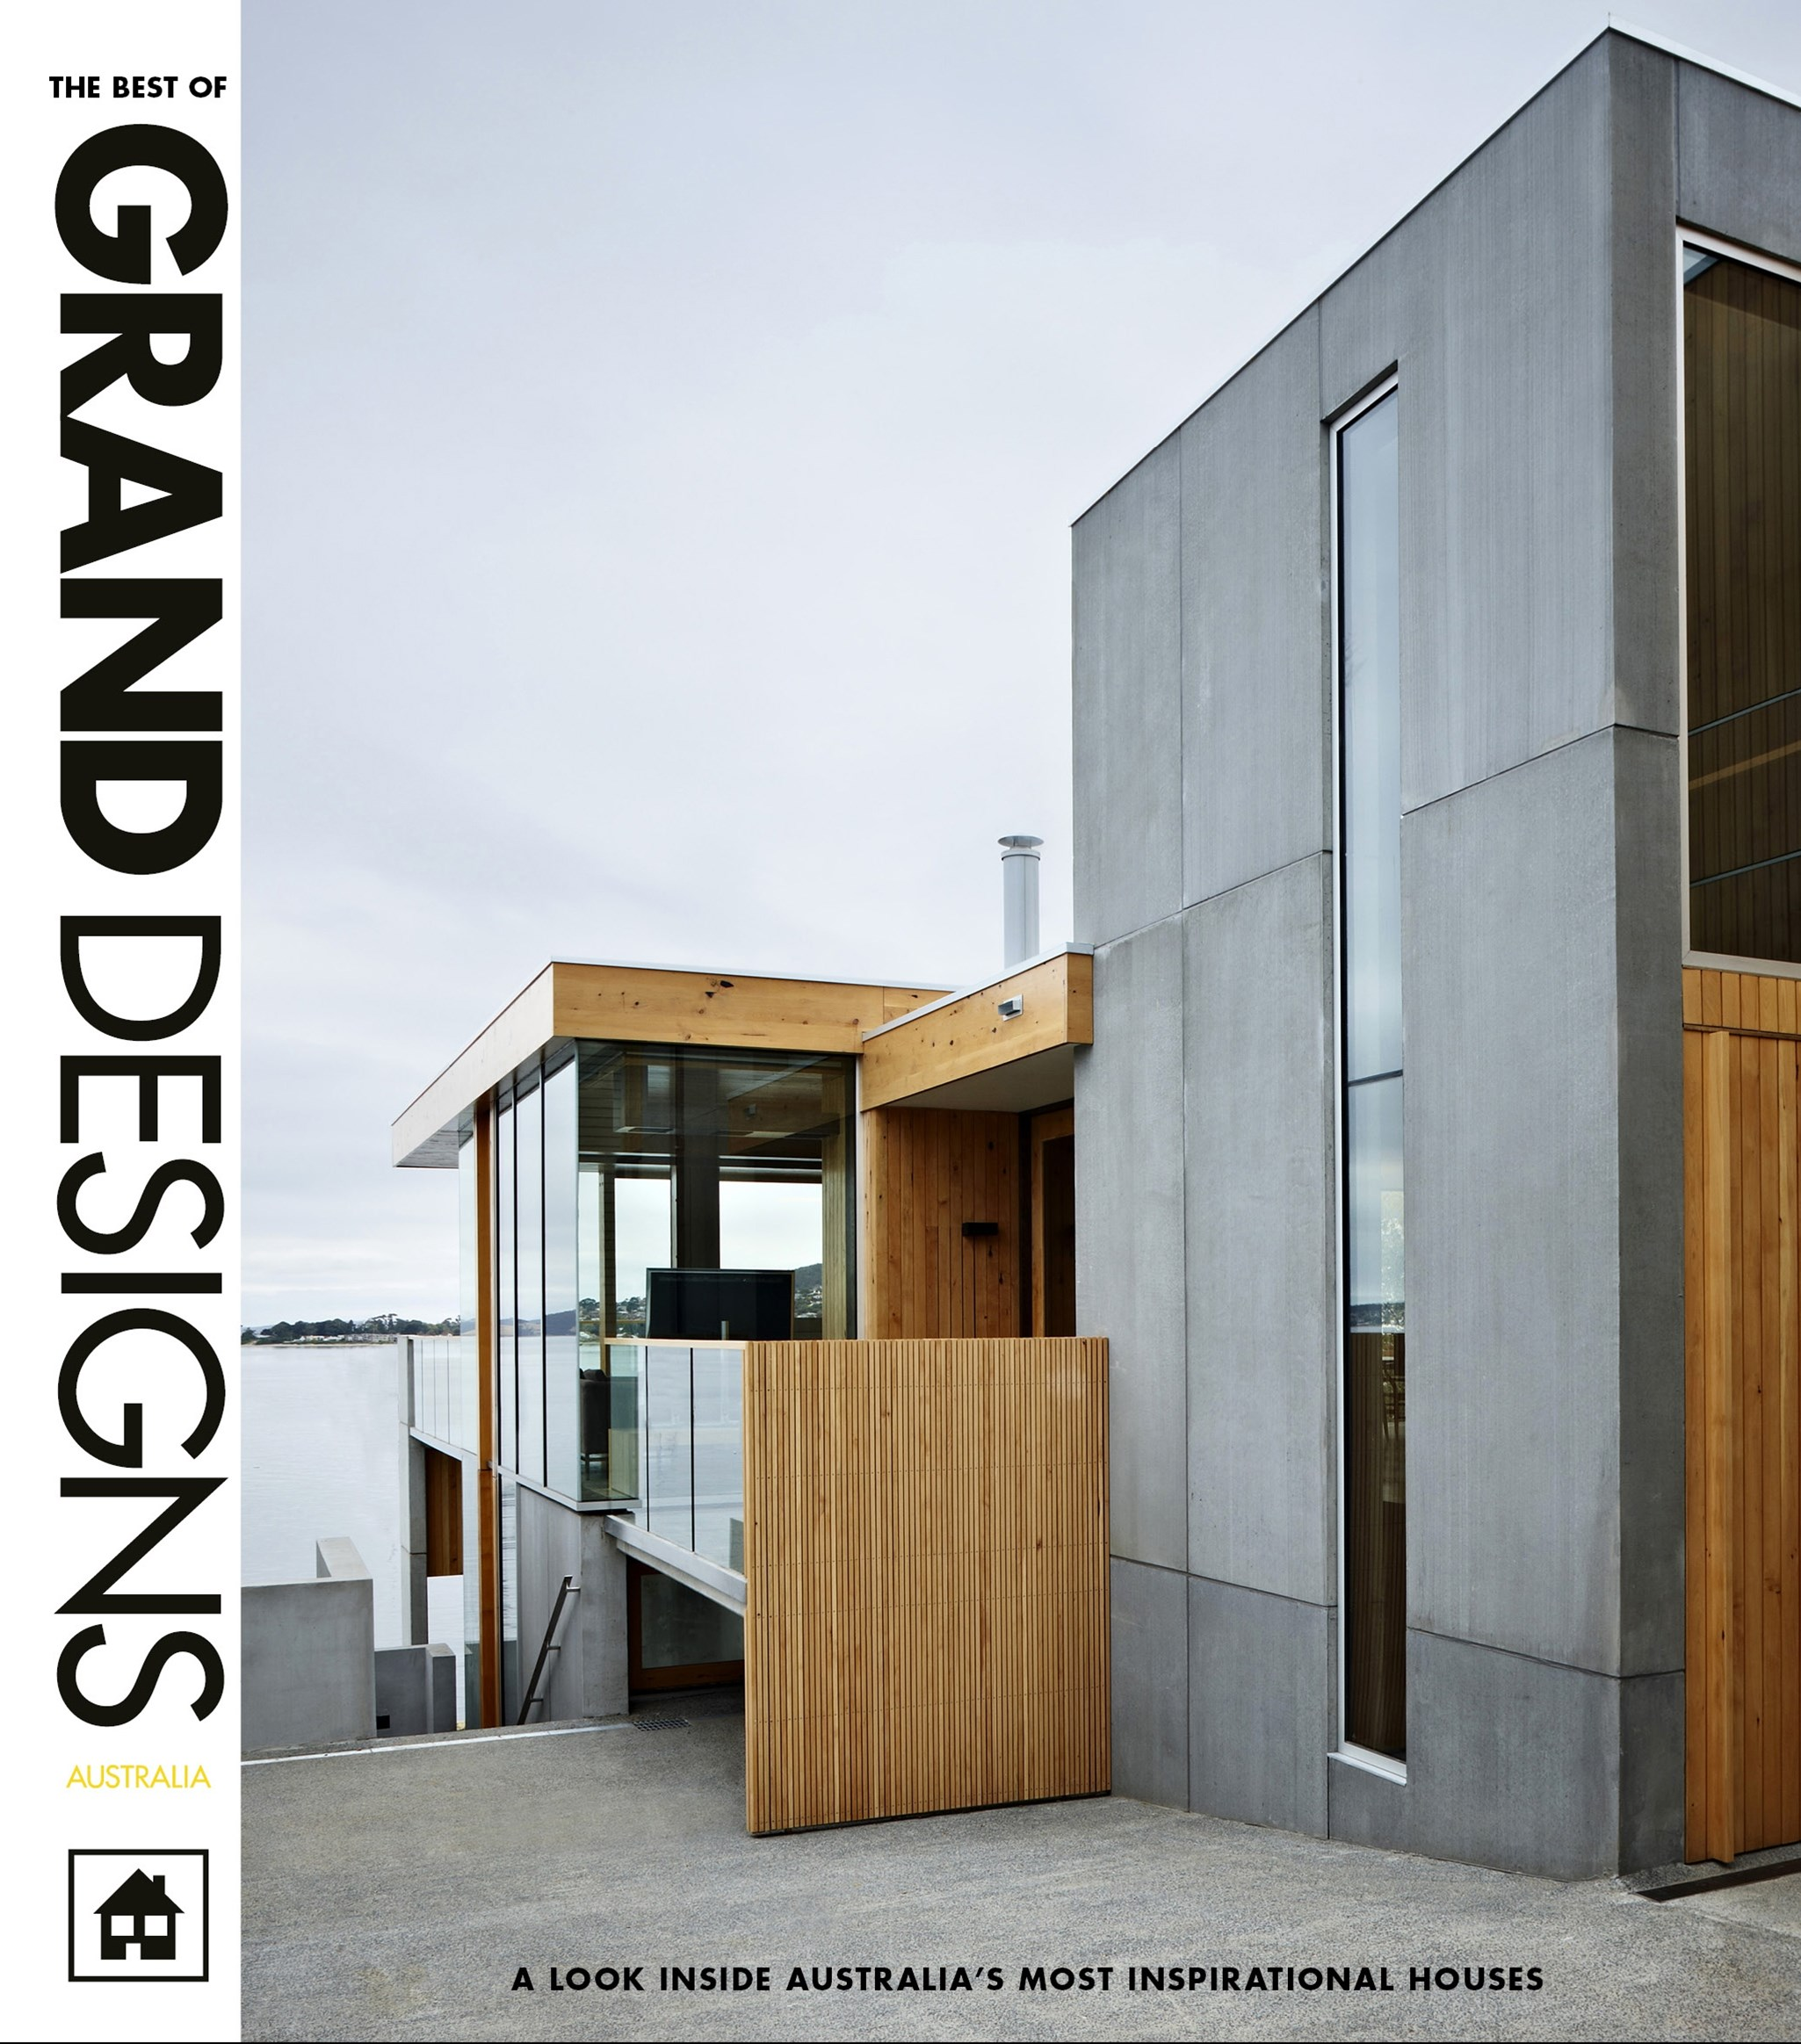 The Best of Grand Designs Australia